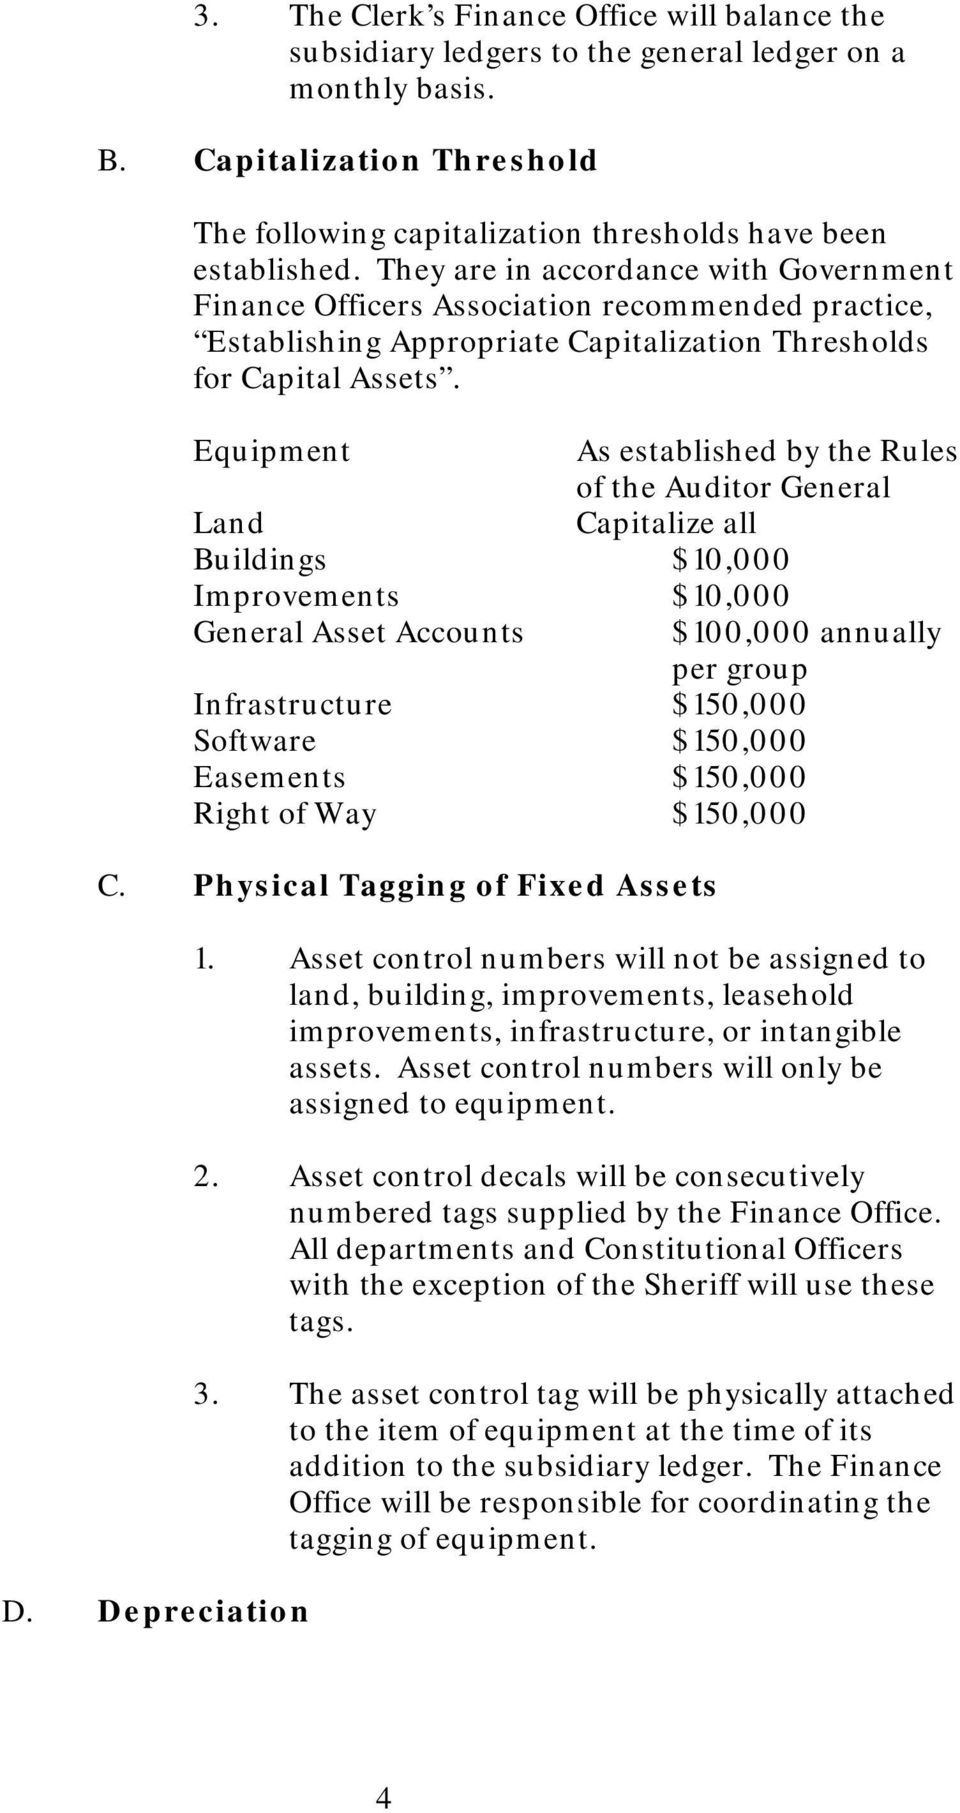 Equipment As established by the Rules of the Auditor General Land Capitalize all Buildings $10,000 Improvements $10,000 General Asset Accounts $100,000 annually per group Infrastructure $150,000